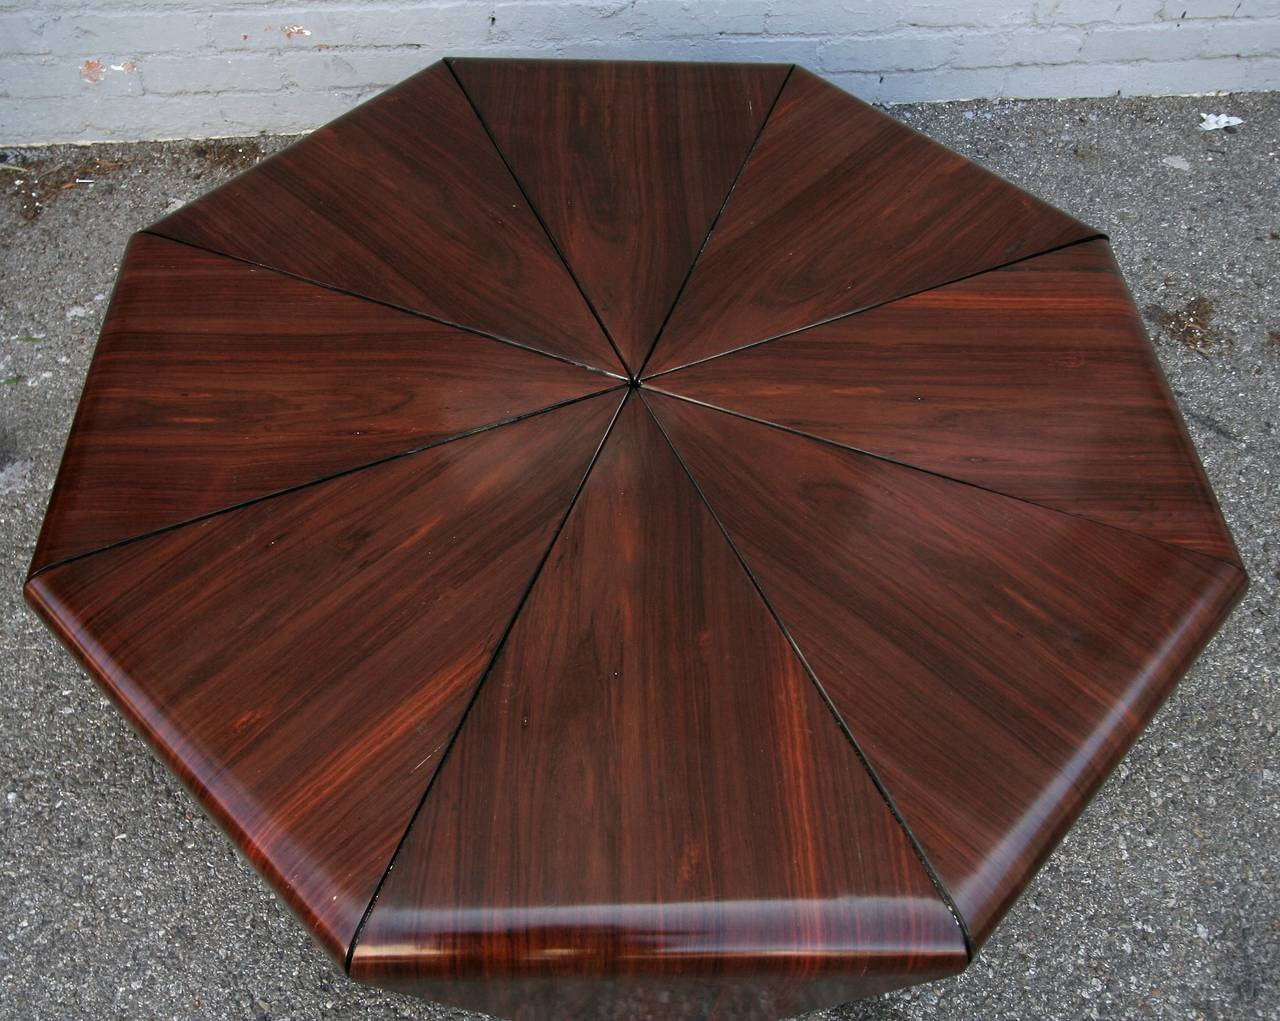 Petalas 1960s Coffee Table by Jorge Zalszupin in Brazilian Jacaranda 3